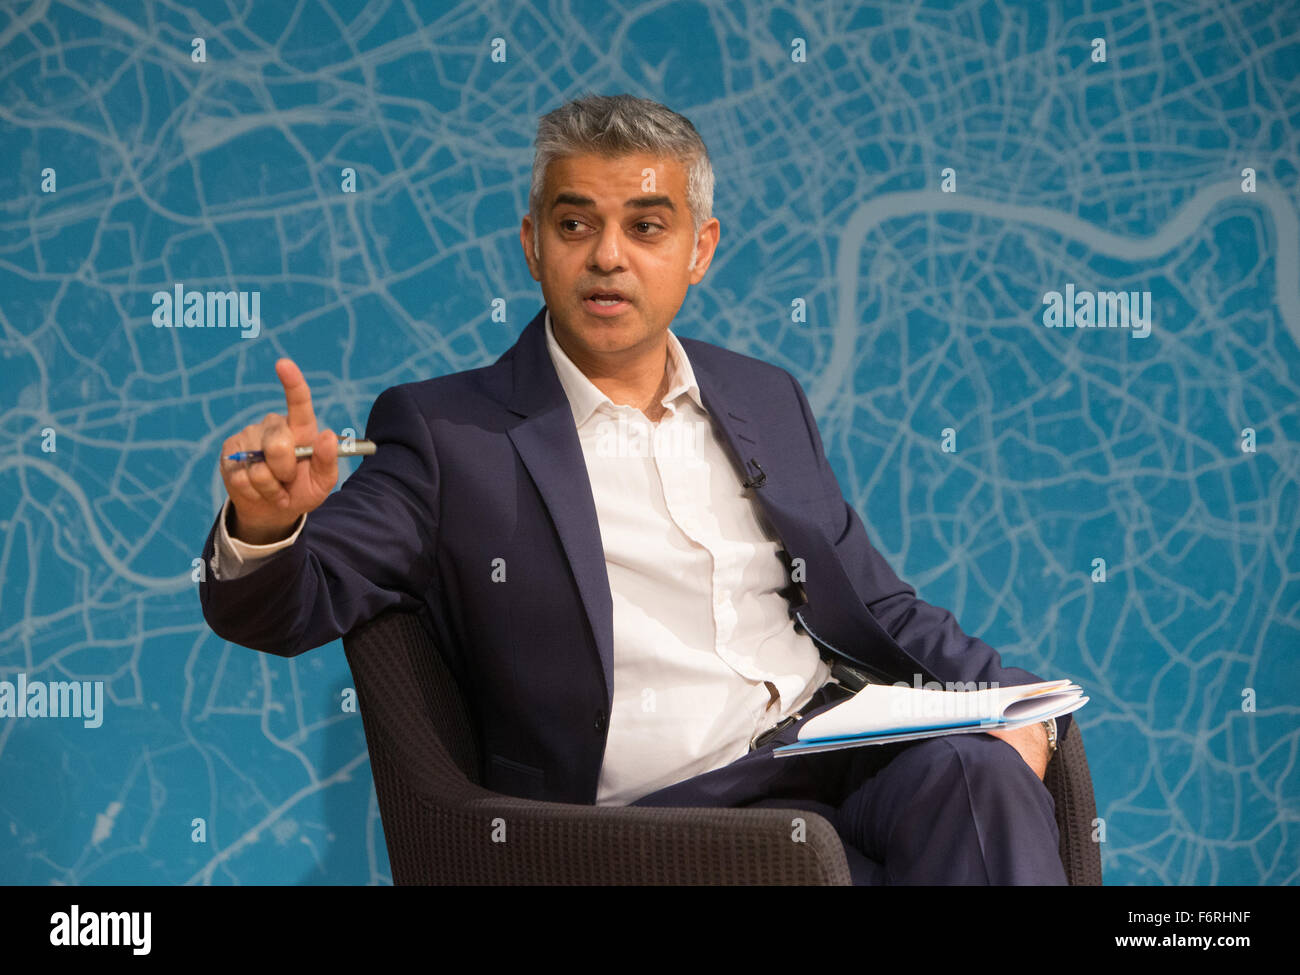 London Mayoral candidate for Labour,Sadiq Khan,speaks at an event about his plans for London,if elected - Stock Image